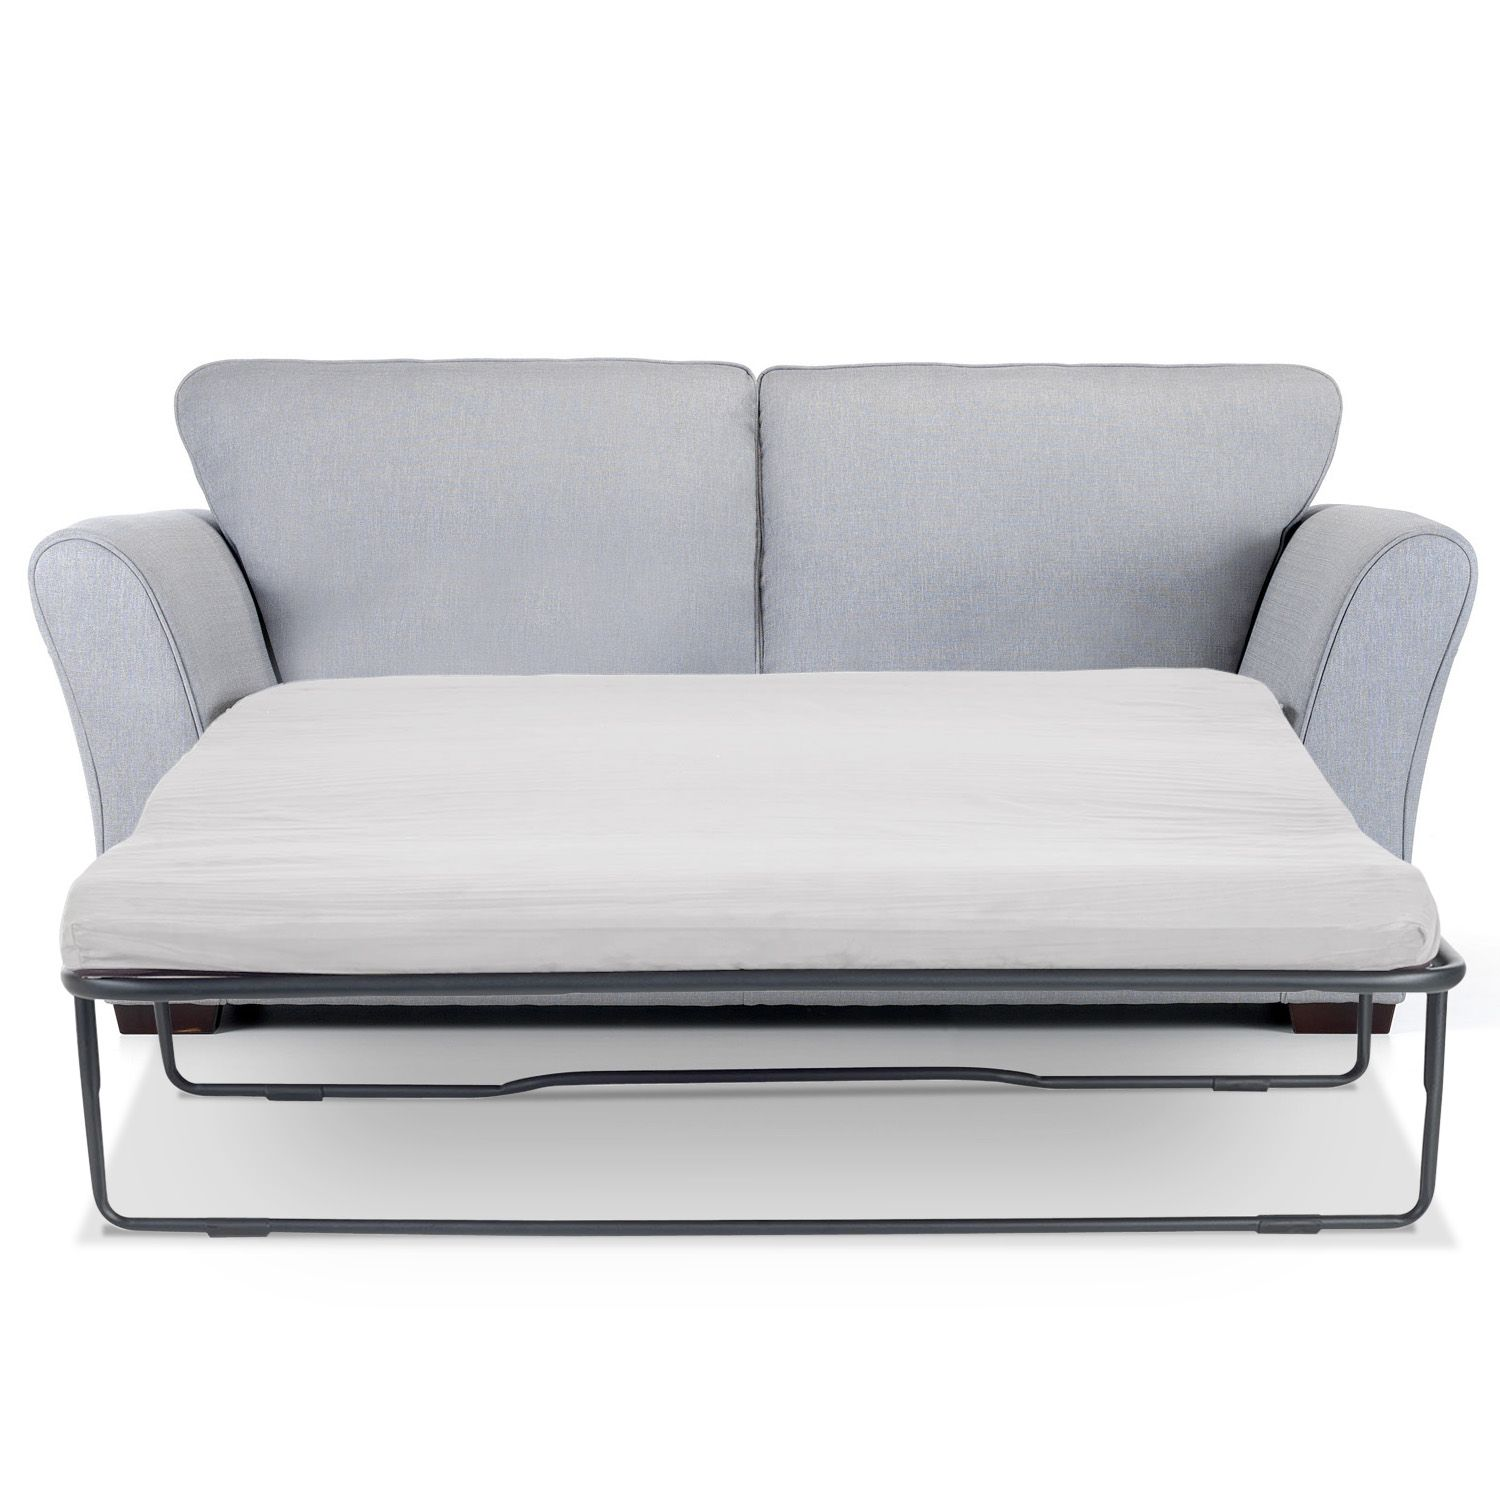 Evian 3 Seater Sofabed Next Day